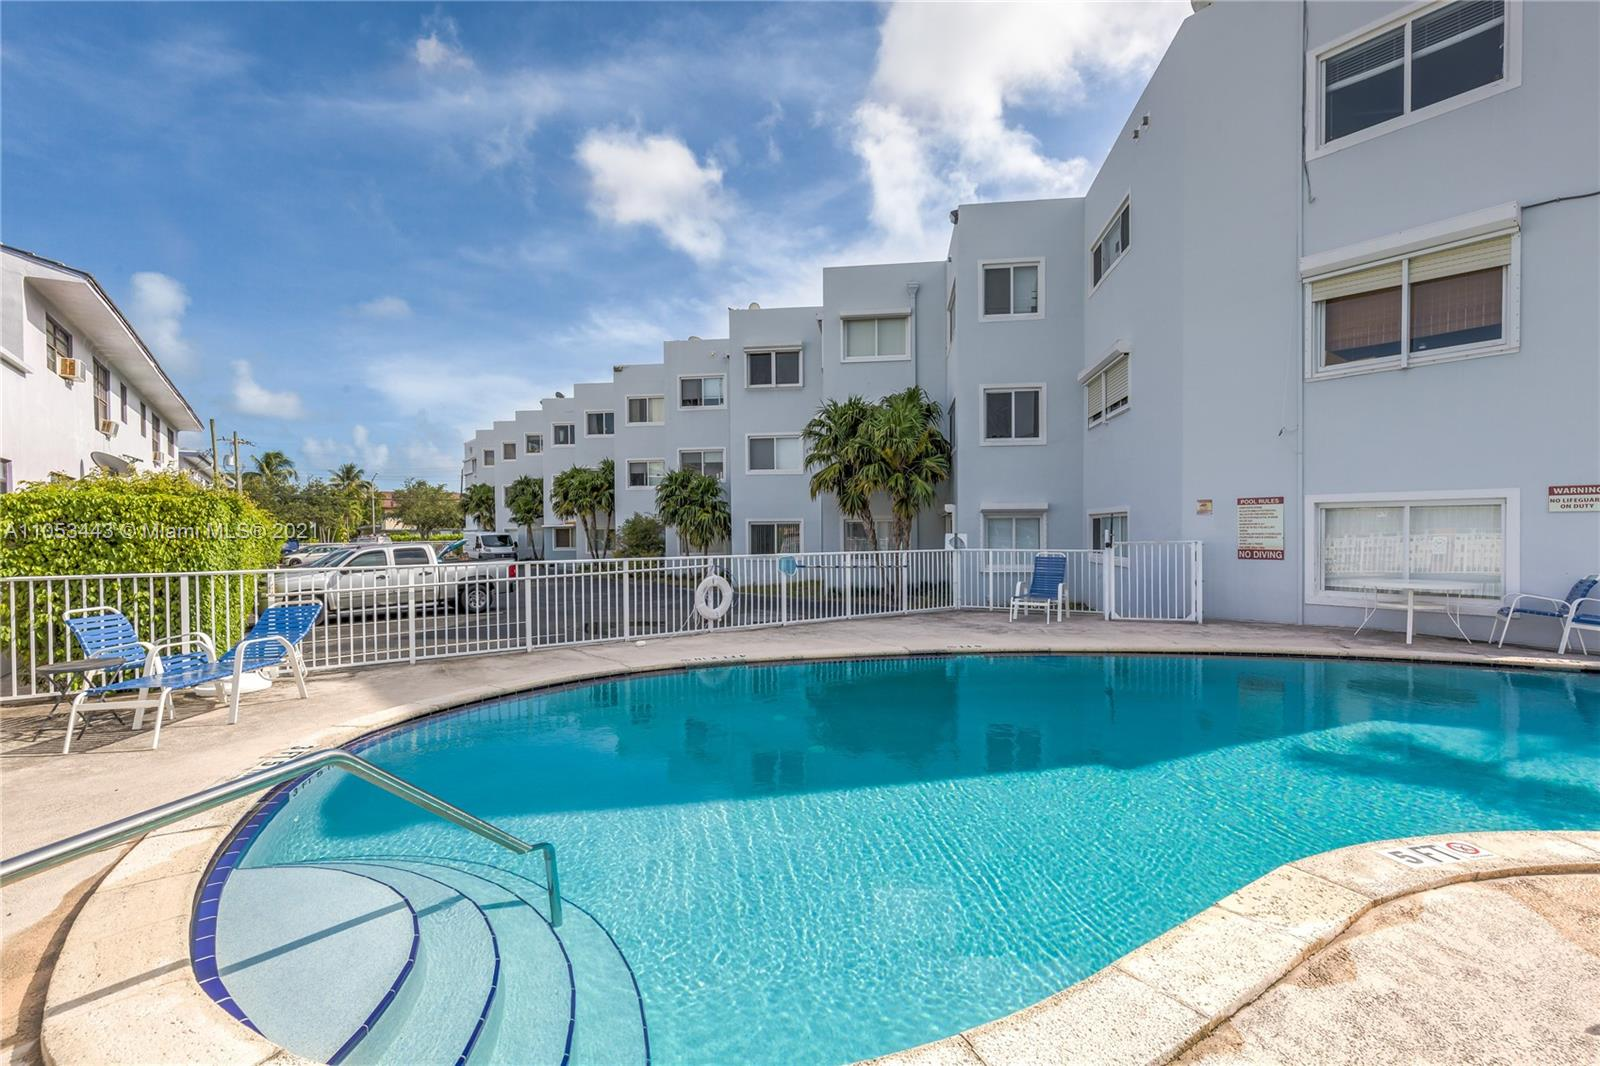 Spacious 2 BED/ 2 BATH condo in lovely gated community in the heart of Miami Beach on the intracoastal waterway located at Normandy Isle!! 1 assigned gated parking space plus plenty of street parking. Gorgeous pool and BBQ overlooking the water with tropical landscaping on the intracoastal waterway. Laundry on site, close to beach, shopping and restaurant. Great schools, shopping and less than a mile from the sand. Tenant is moving on August 1st. A Beautiful Miami Home.